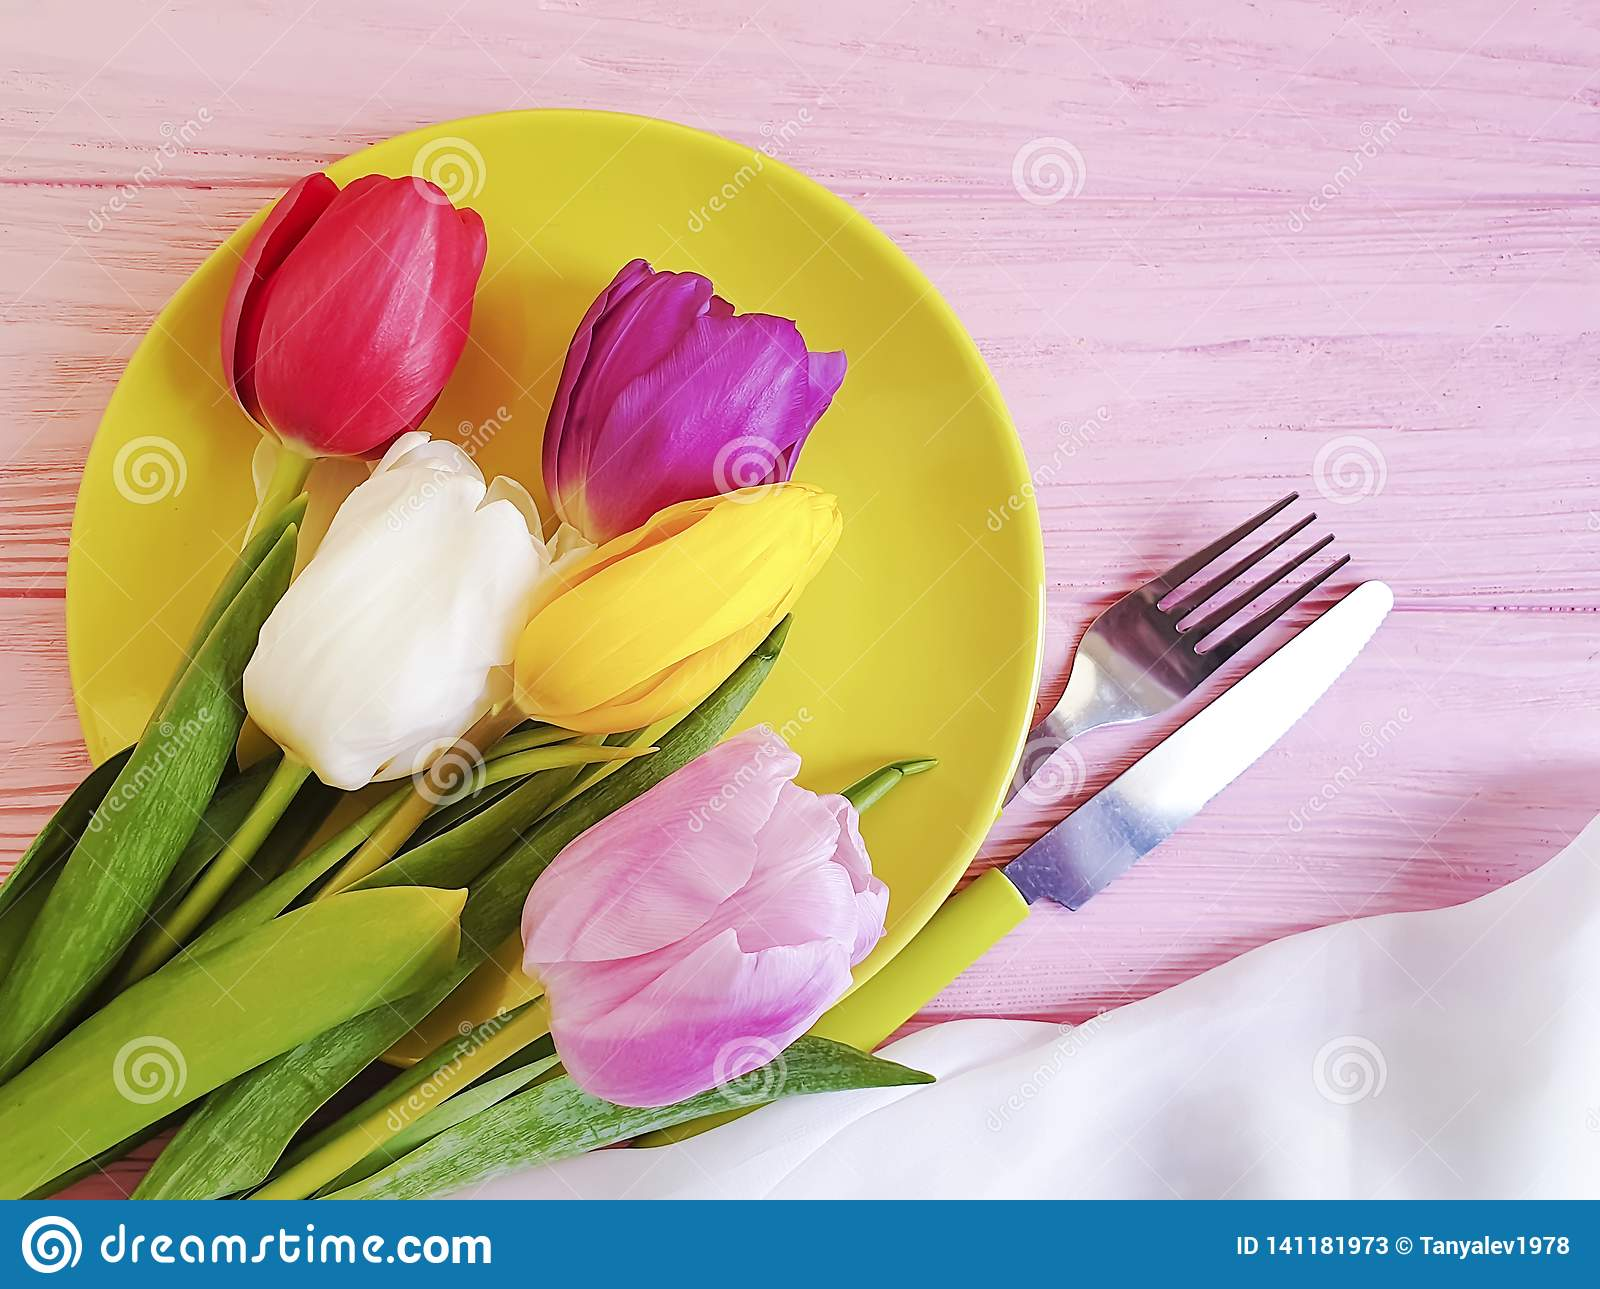 Flower tulip blooming , a plate on a pink wooden romantic background, birthday